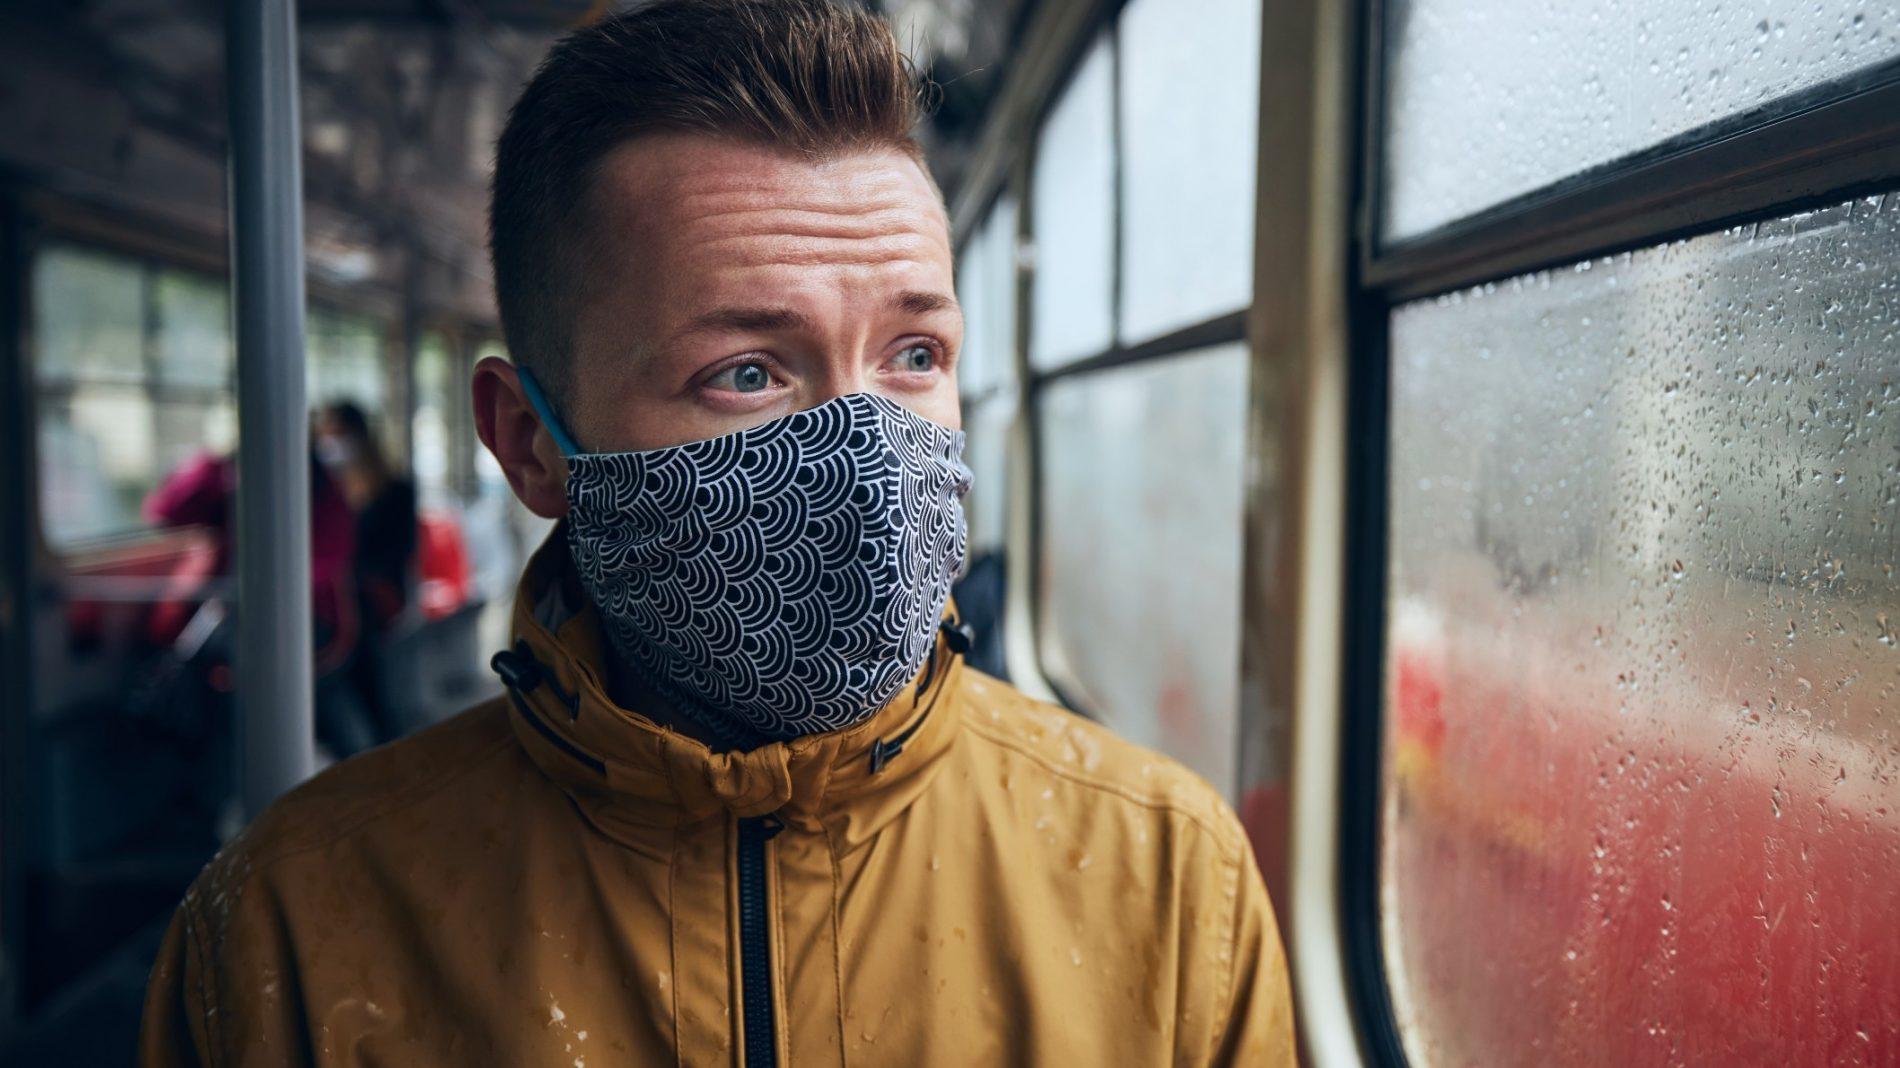 man-wearing-face-mask-in-public-transportation-themes-social-distancing-and-personal-protection_t20_e9NmLa